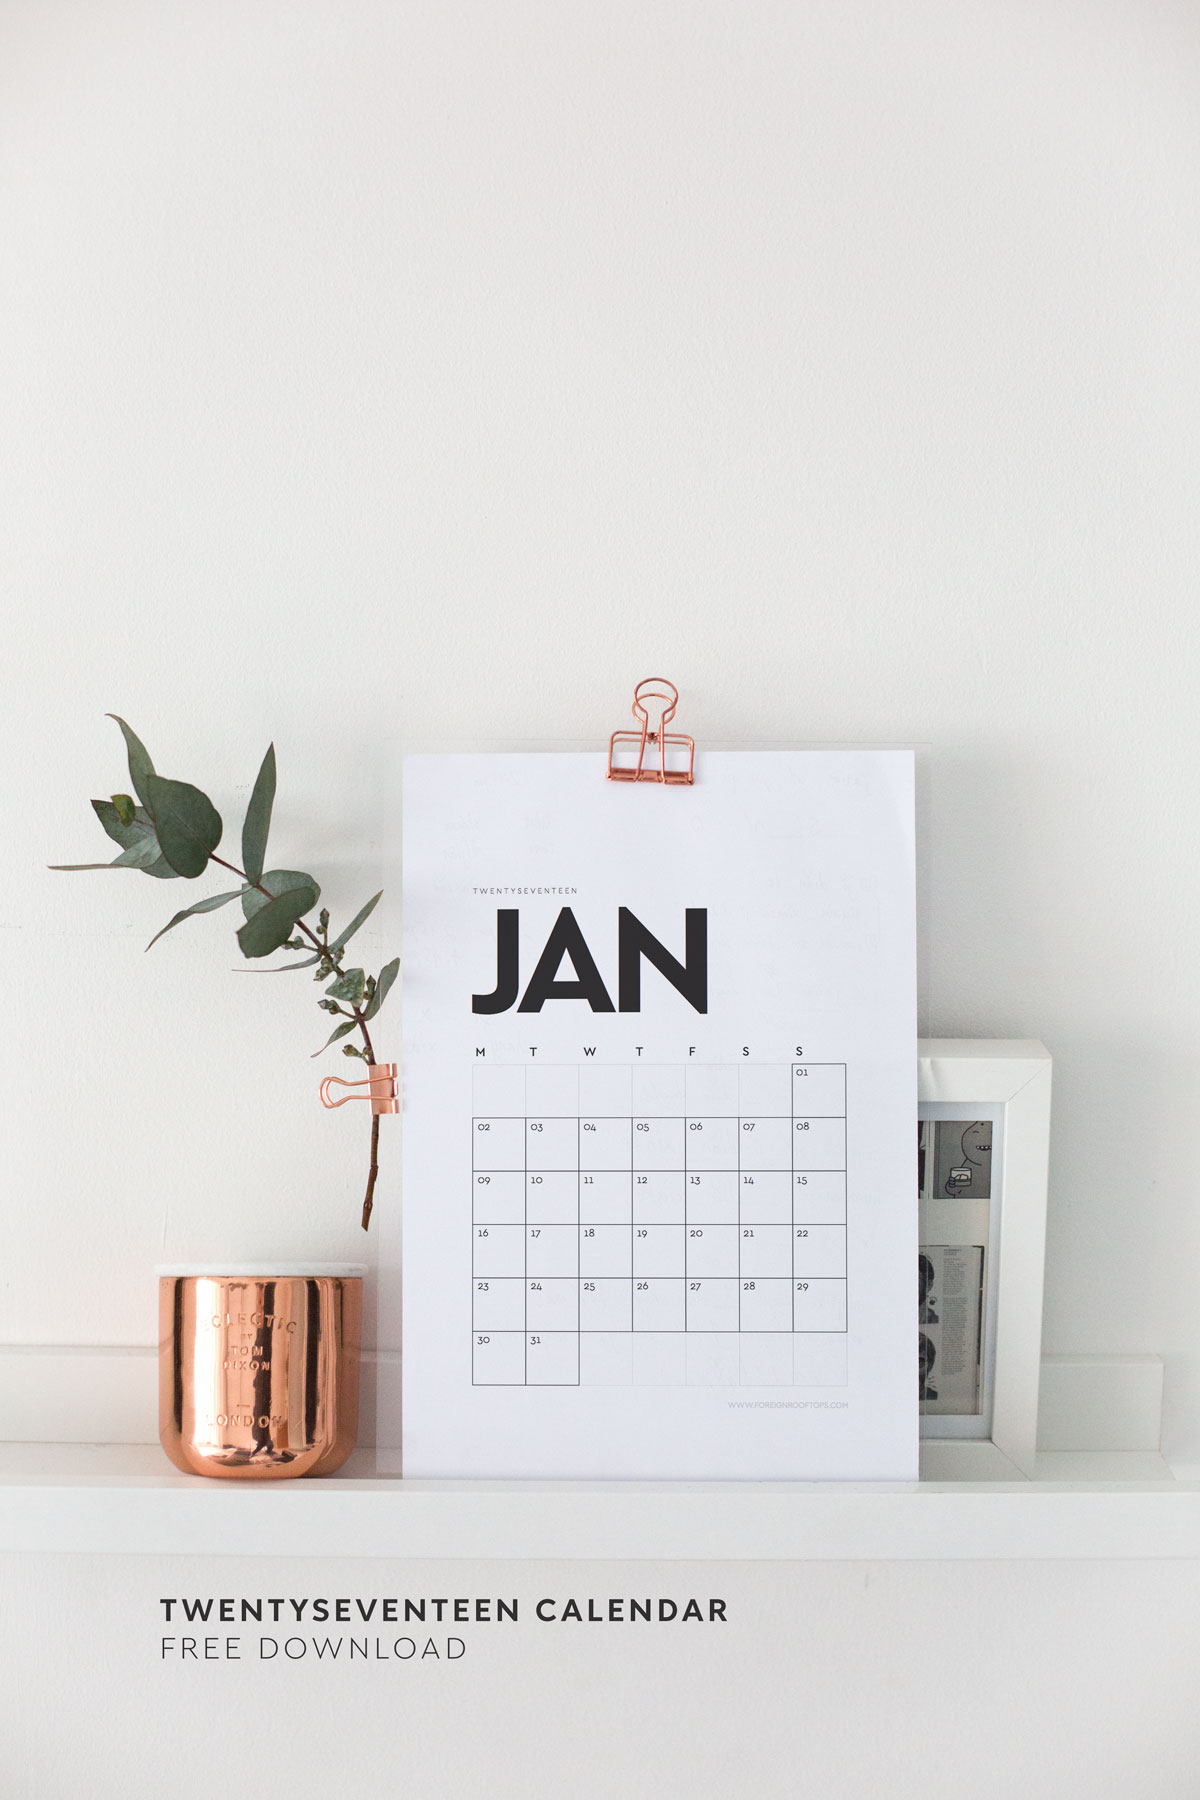 Minimalist Calendar Design : Printable wall calendar free download